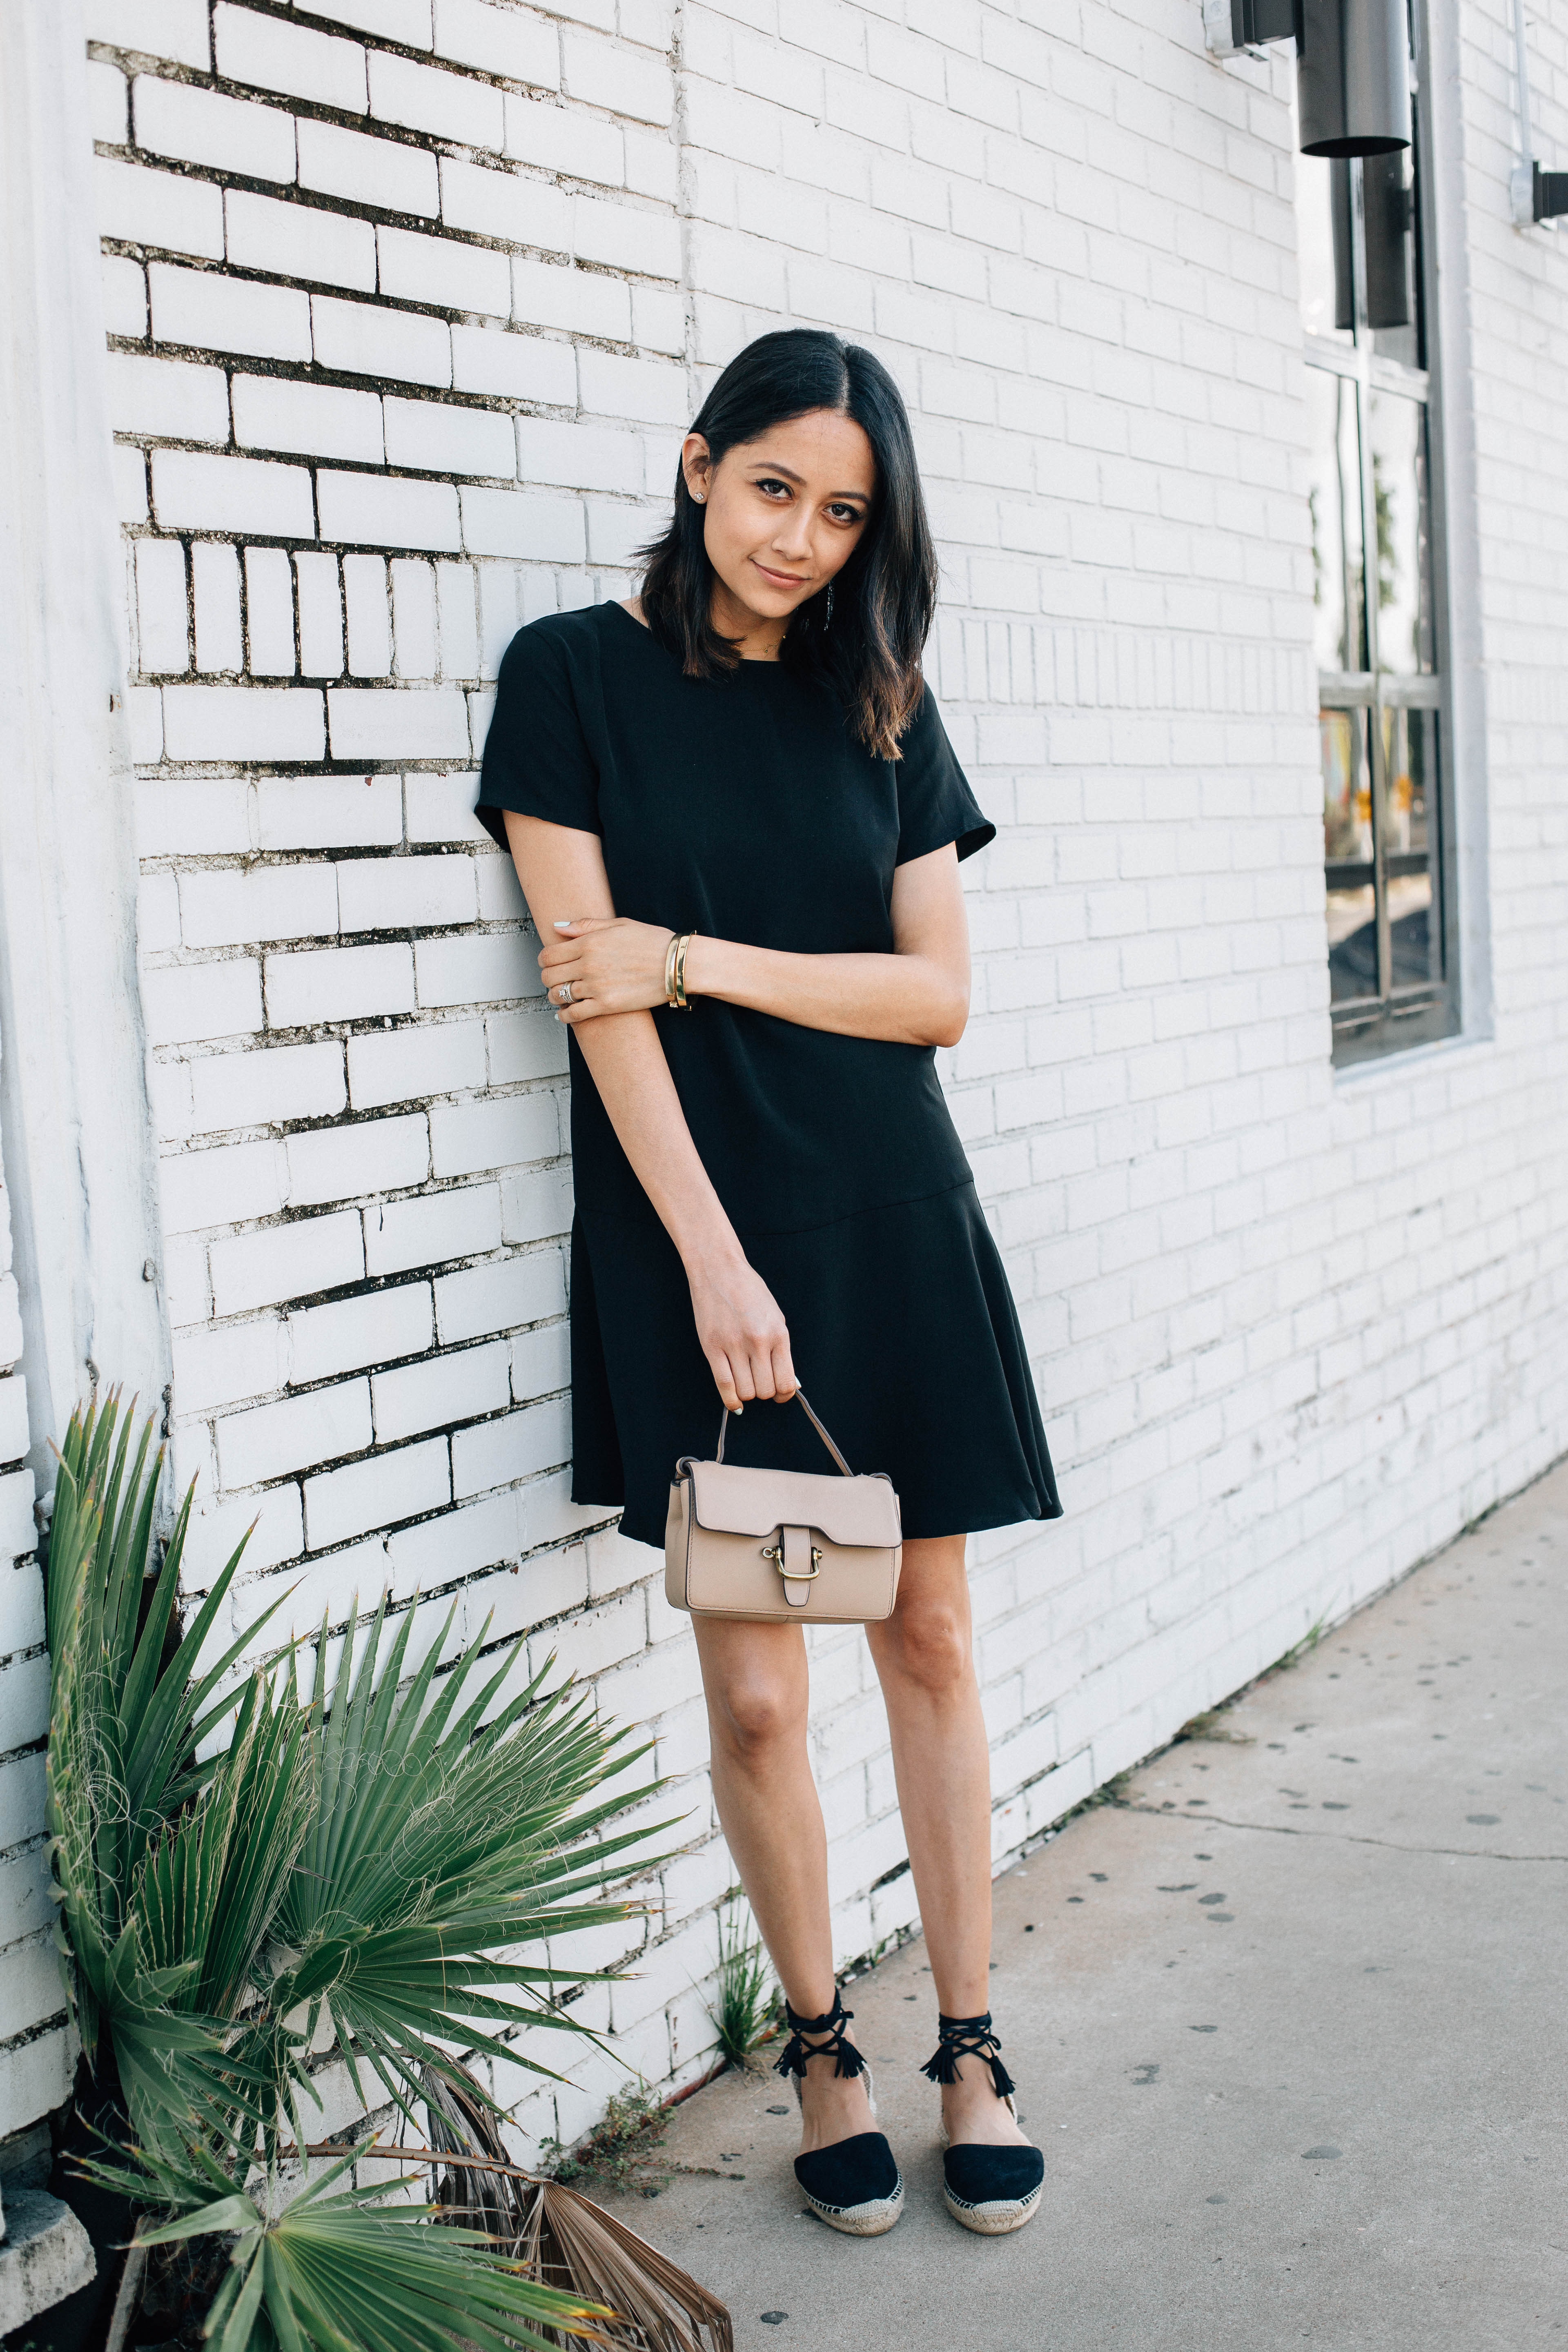 Style blogger Lilly Beltran of Daily Craving in a casual look wearing a black dress and black tassel espadrilles